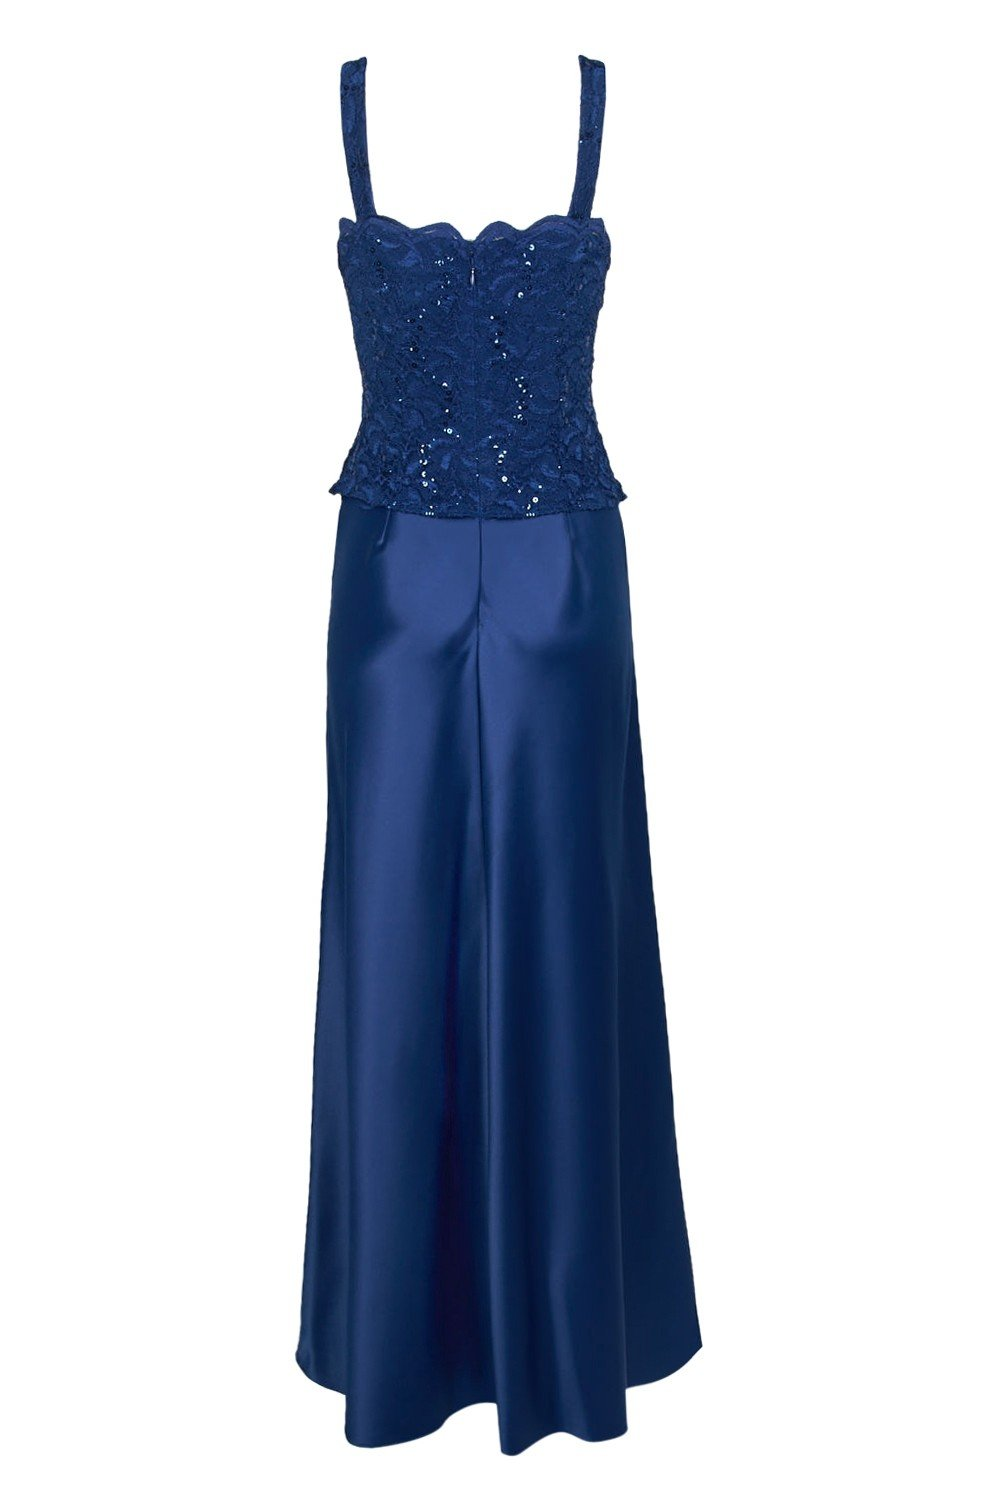 Alex Evenings - 81122152 Lace Bodice Long A-Line Dress with Jacket In Blue